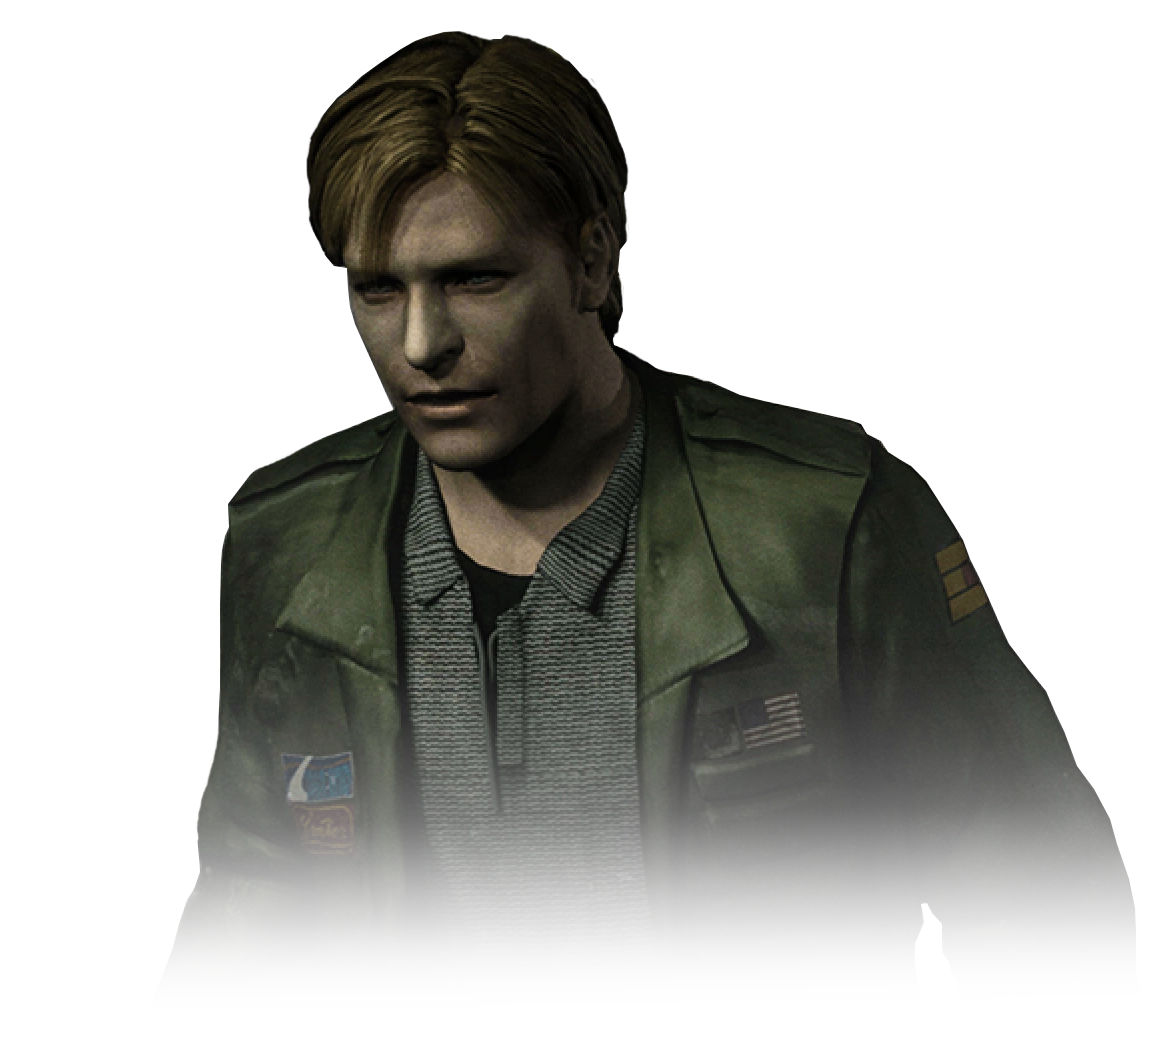 silent hill 2 james voice actor